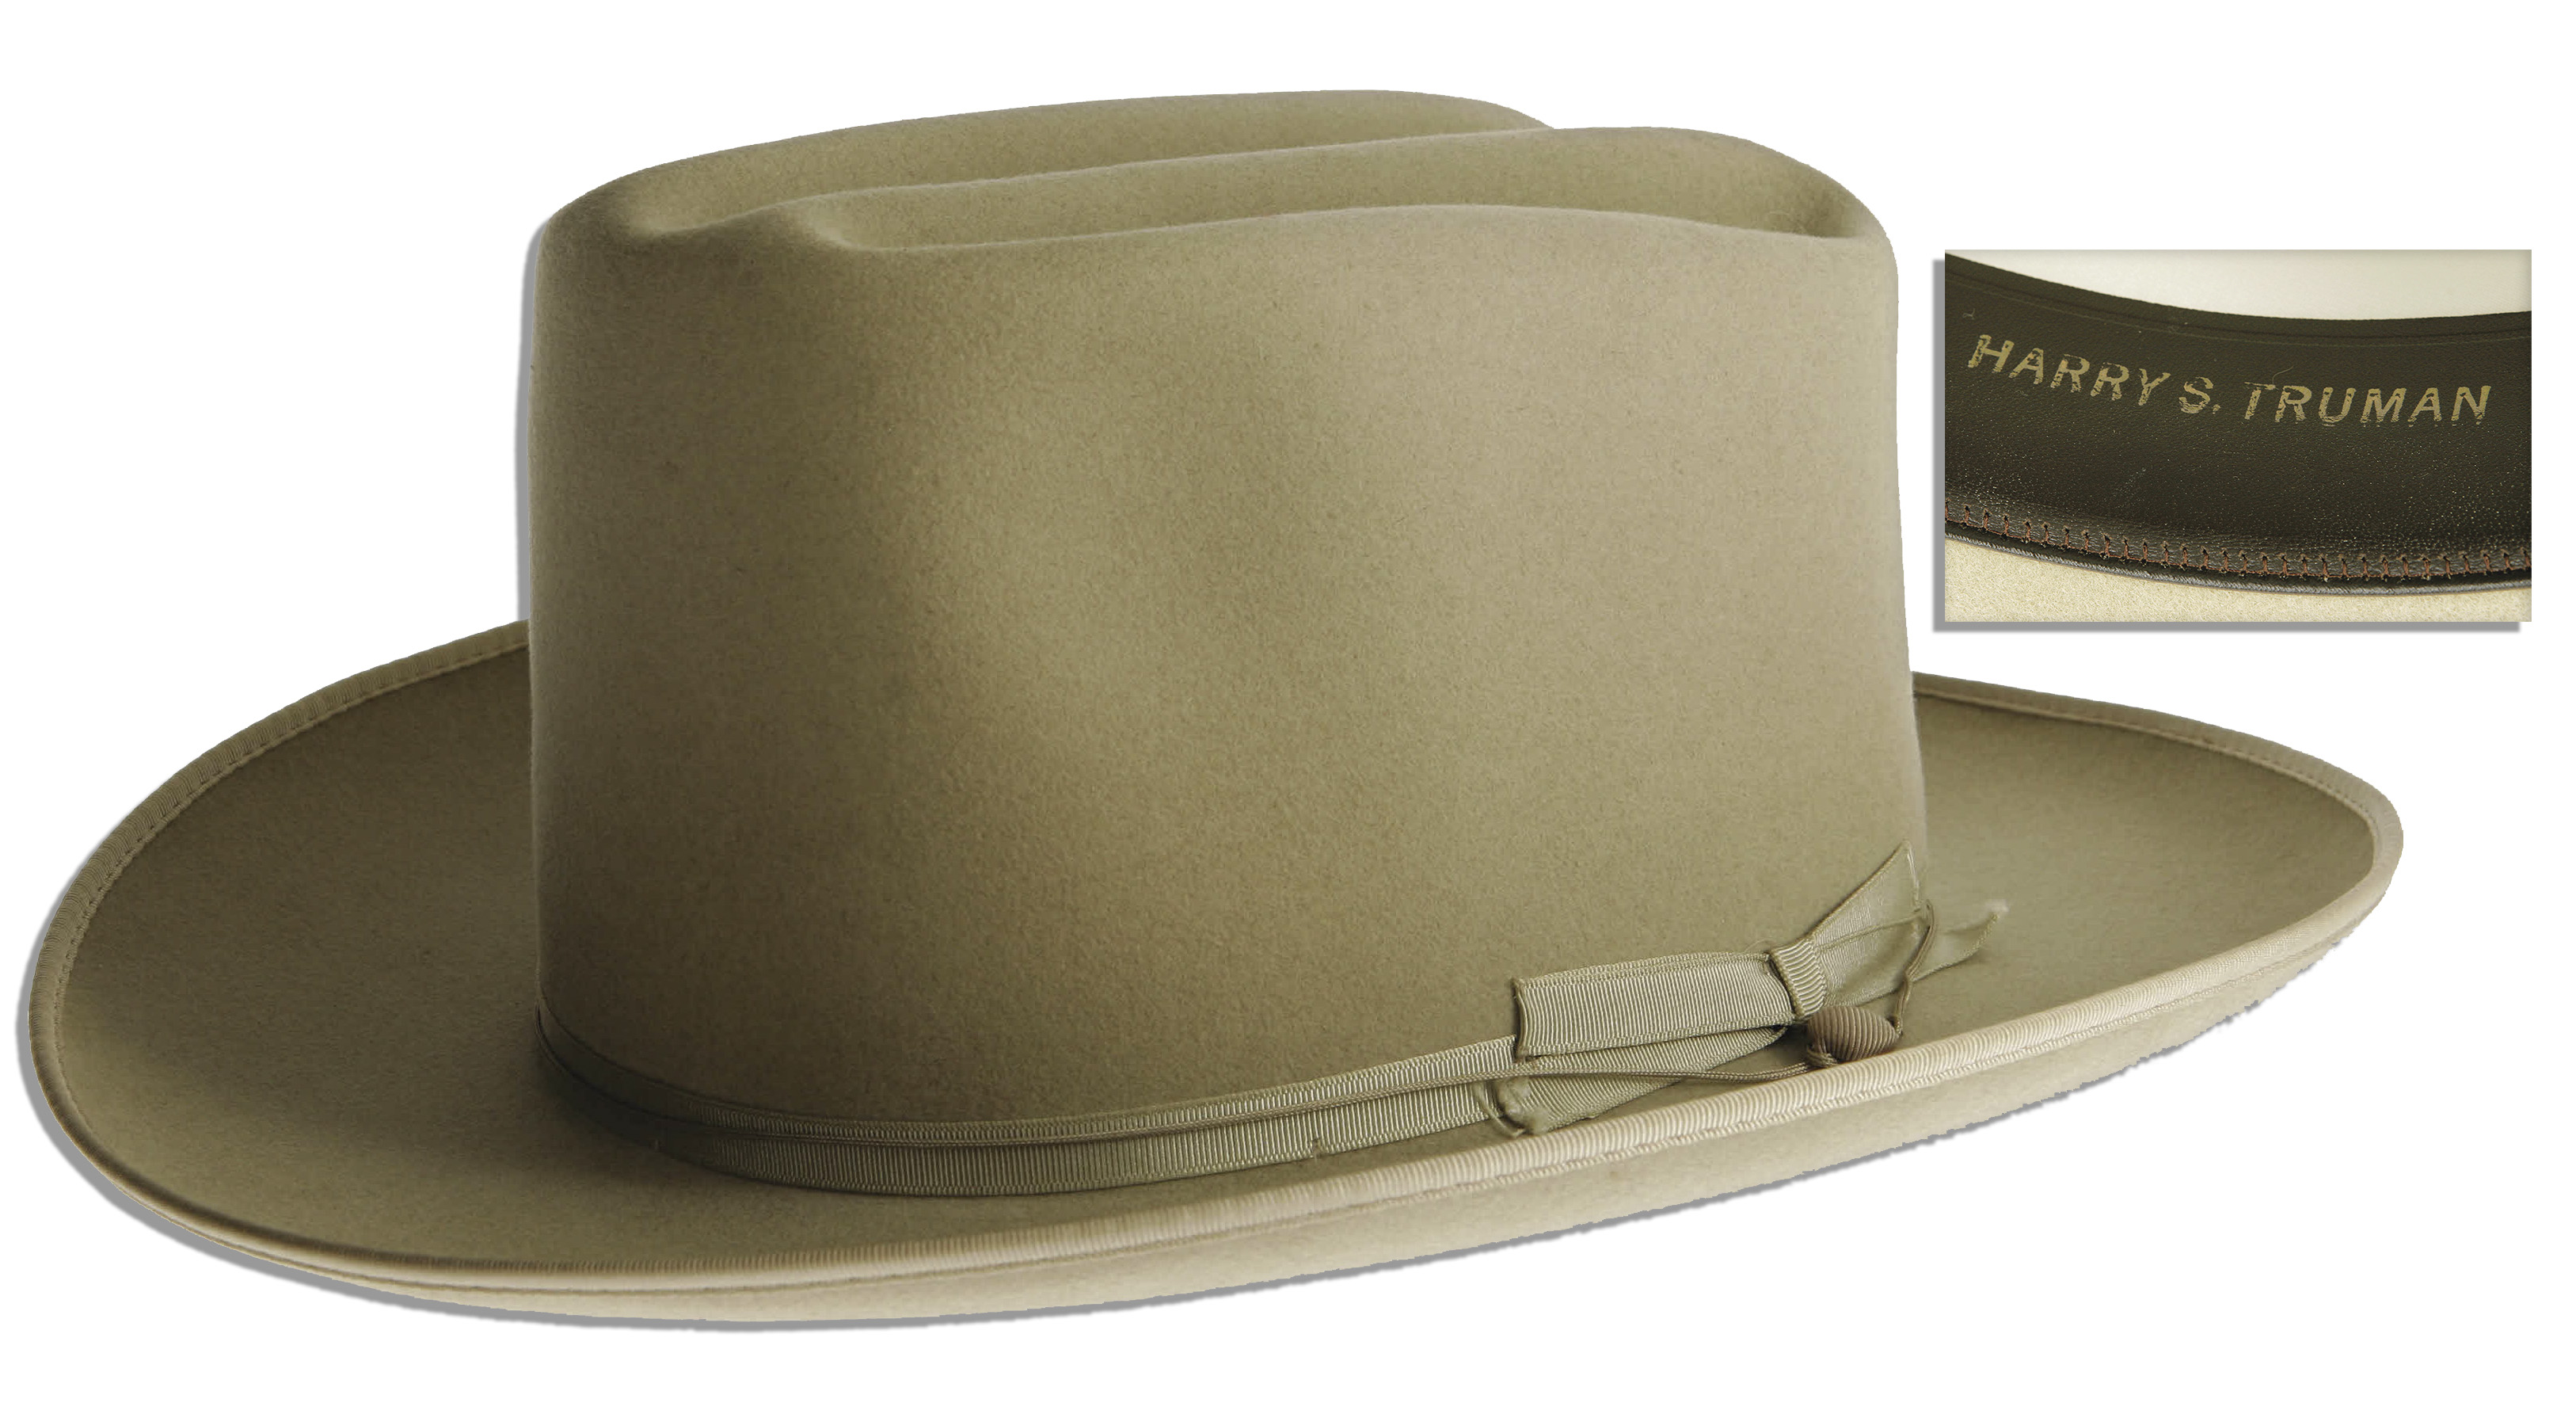 Harry Truman Memorabilia Harry Truman's Personally Owned Stetson Hat